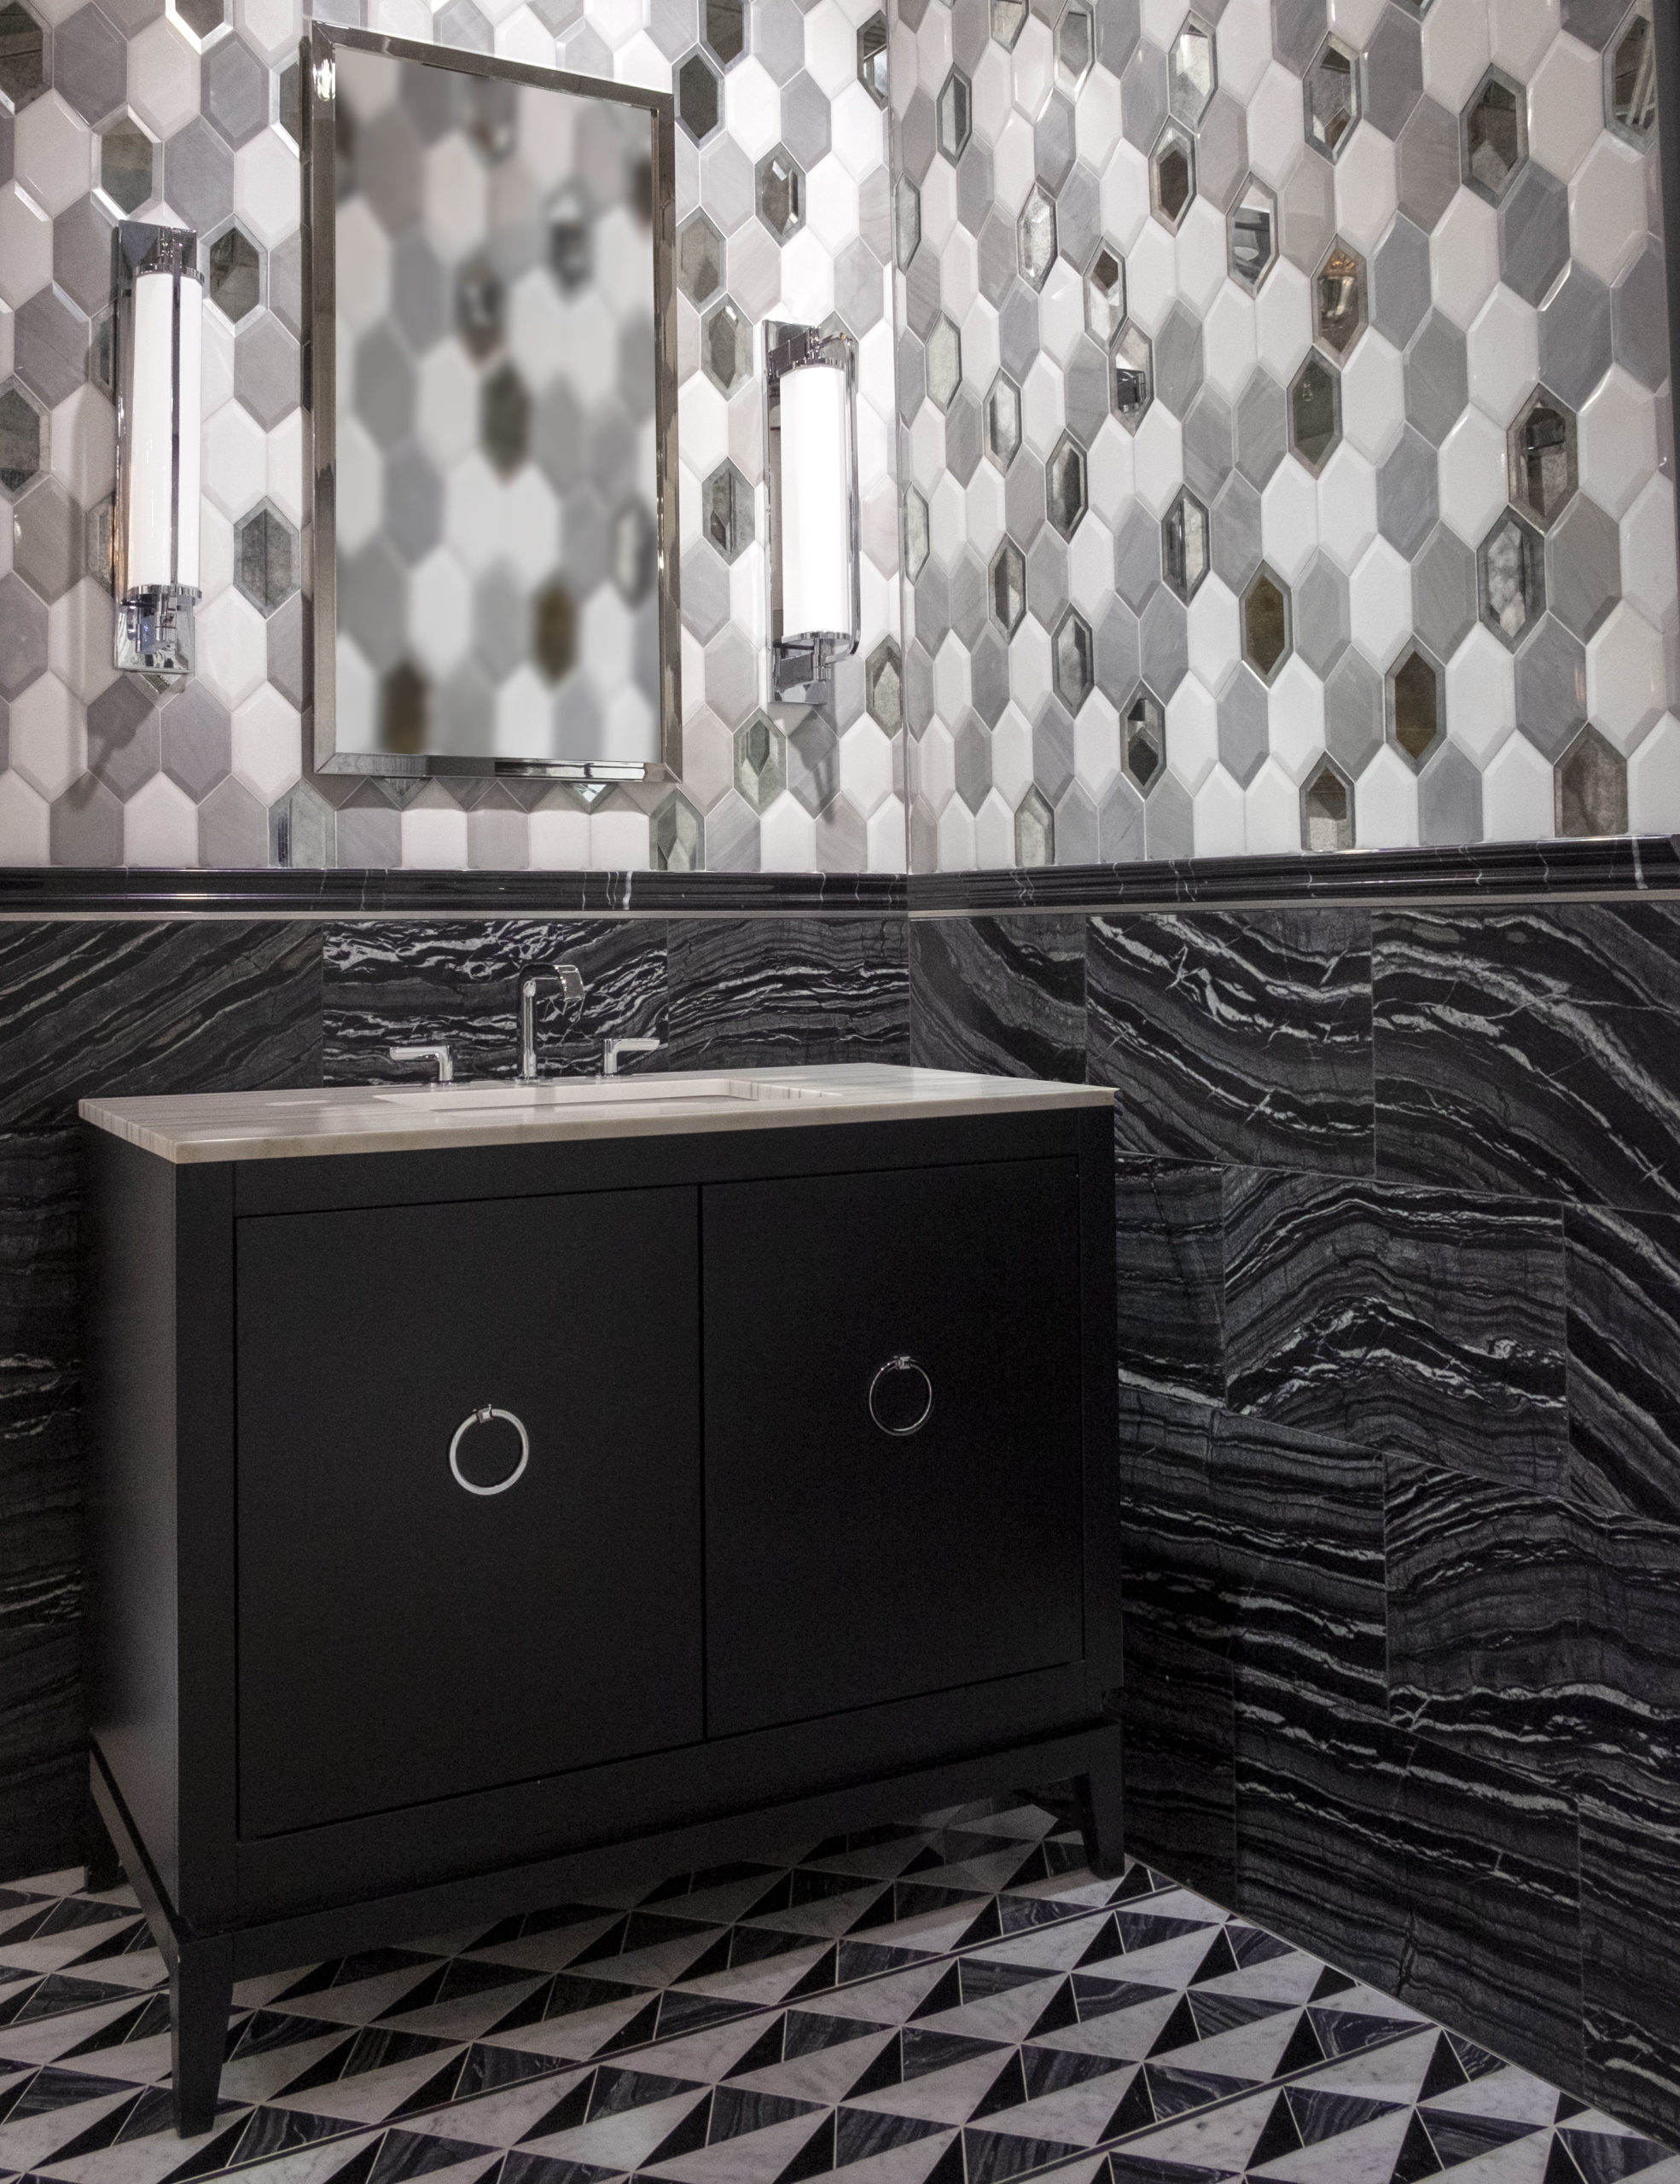 Precision Square Hepburn Stainless Steel wall & floor